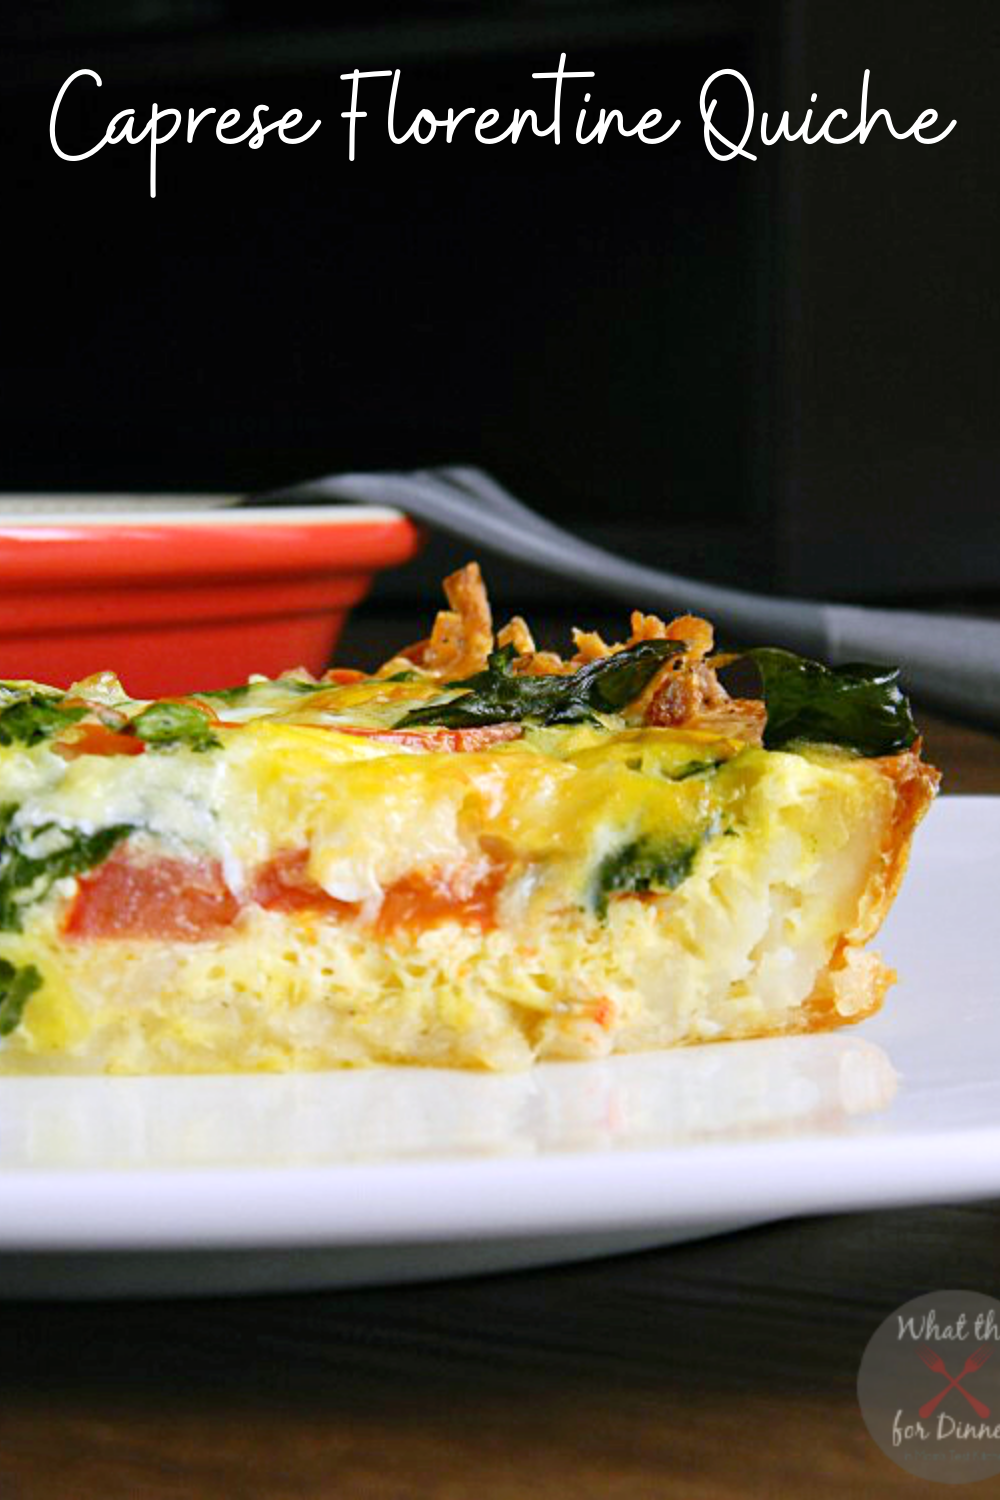 Be the star of the show at brunch when you serve this delicious quiche packed with fresh spinach and tomatoes on top of a shredded hash brown potato crust!